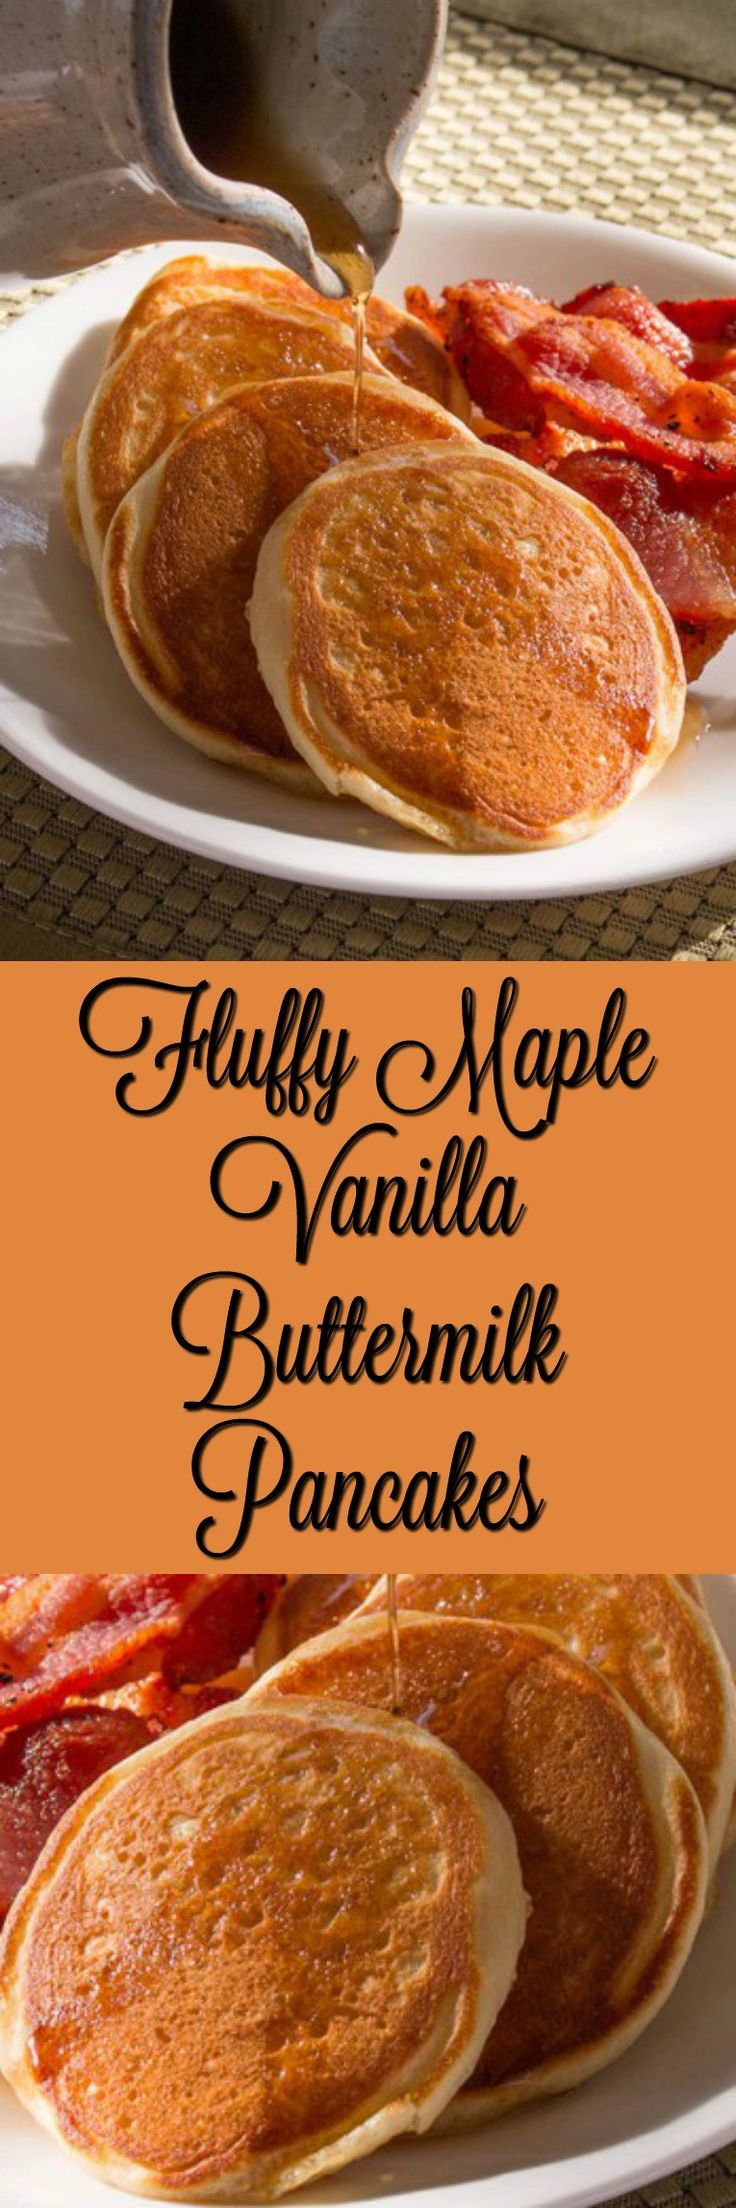 A delicious pancake recipe that features maple syrup, vanilla, and buttermilk.